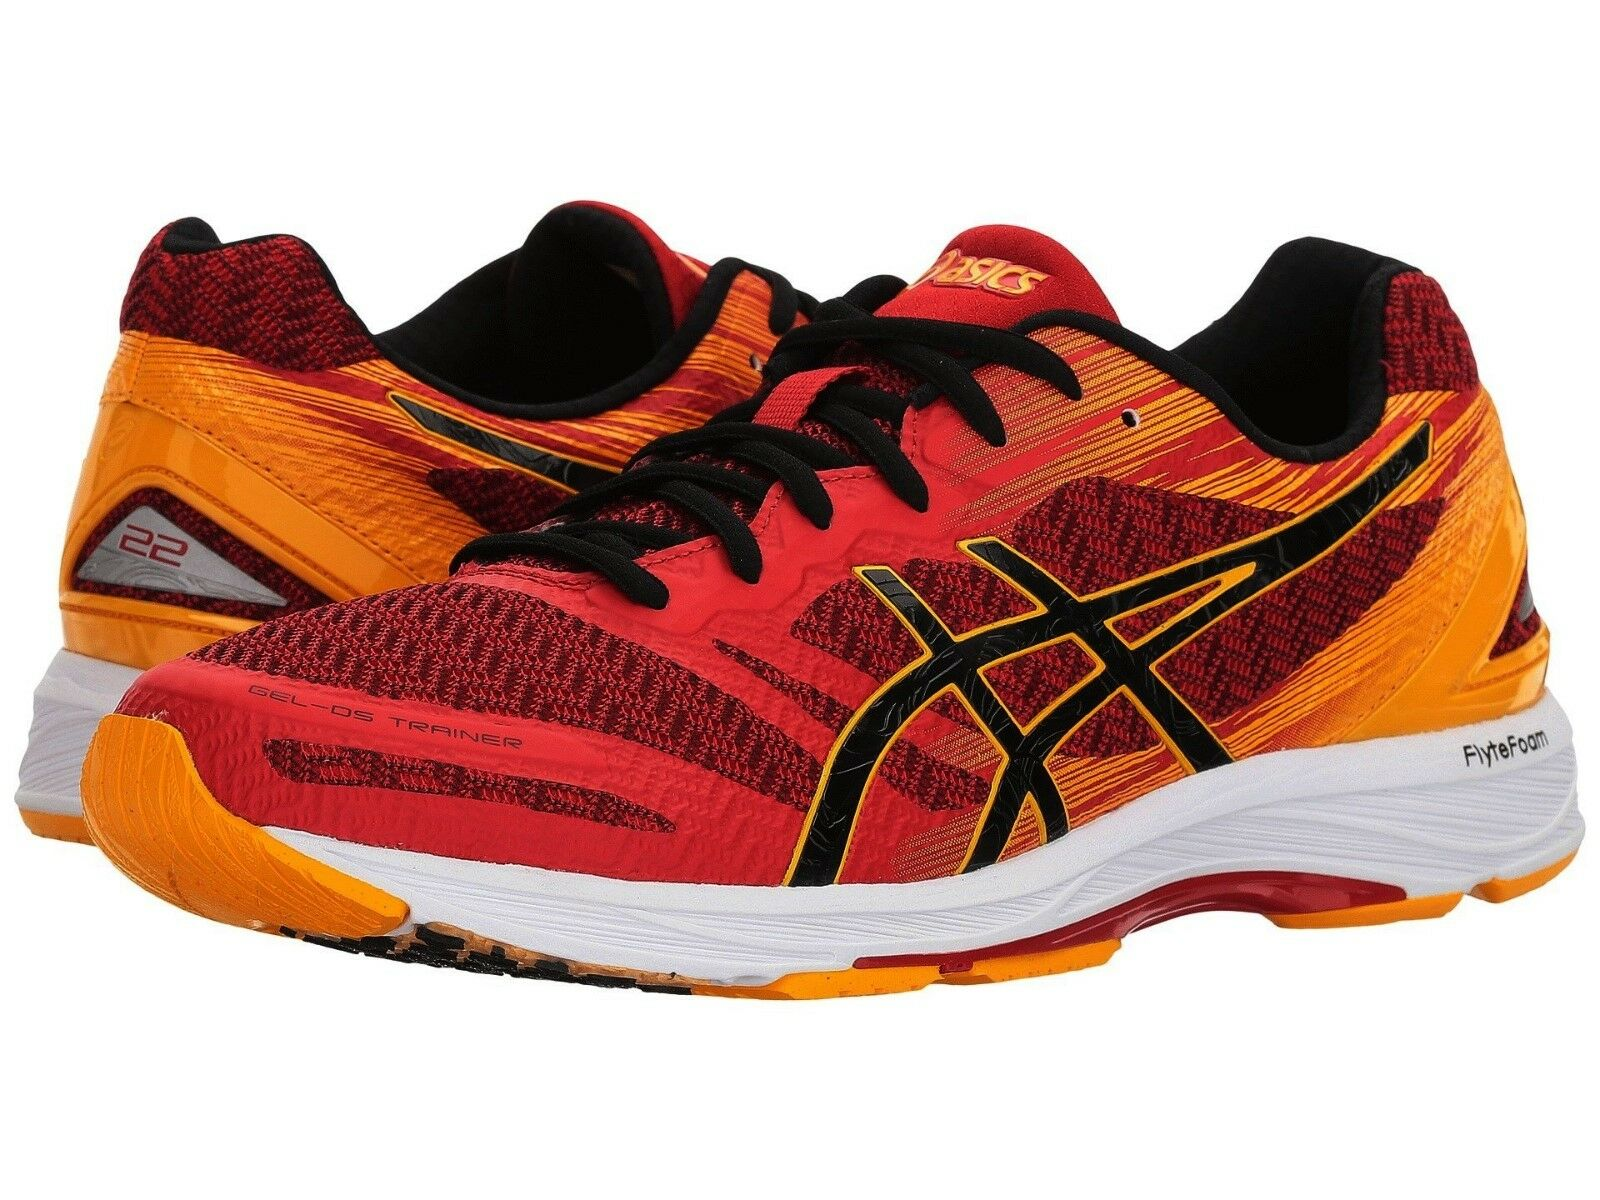 NEW Uomo ASICS GEL-DS TRAINER 22 RUNNING/TRAINING SHOES - 10 / EUR 44 AUTHENTIC